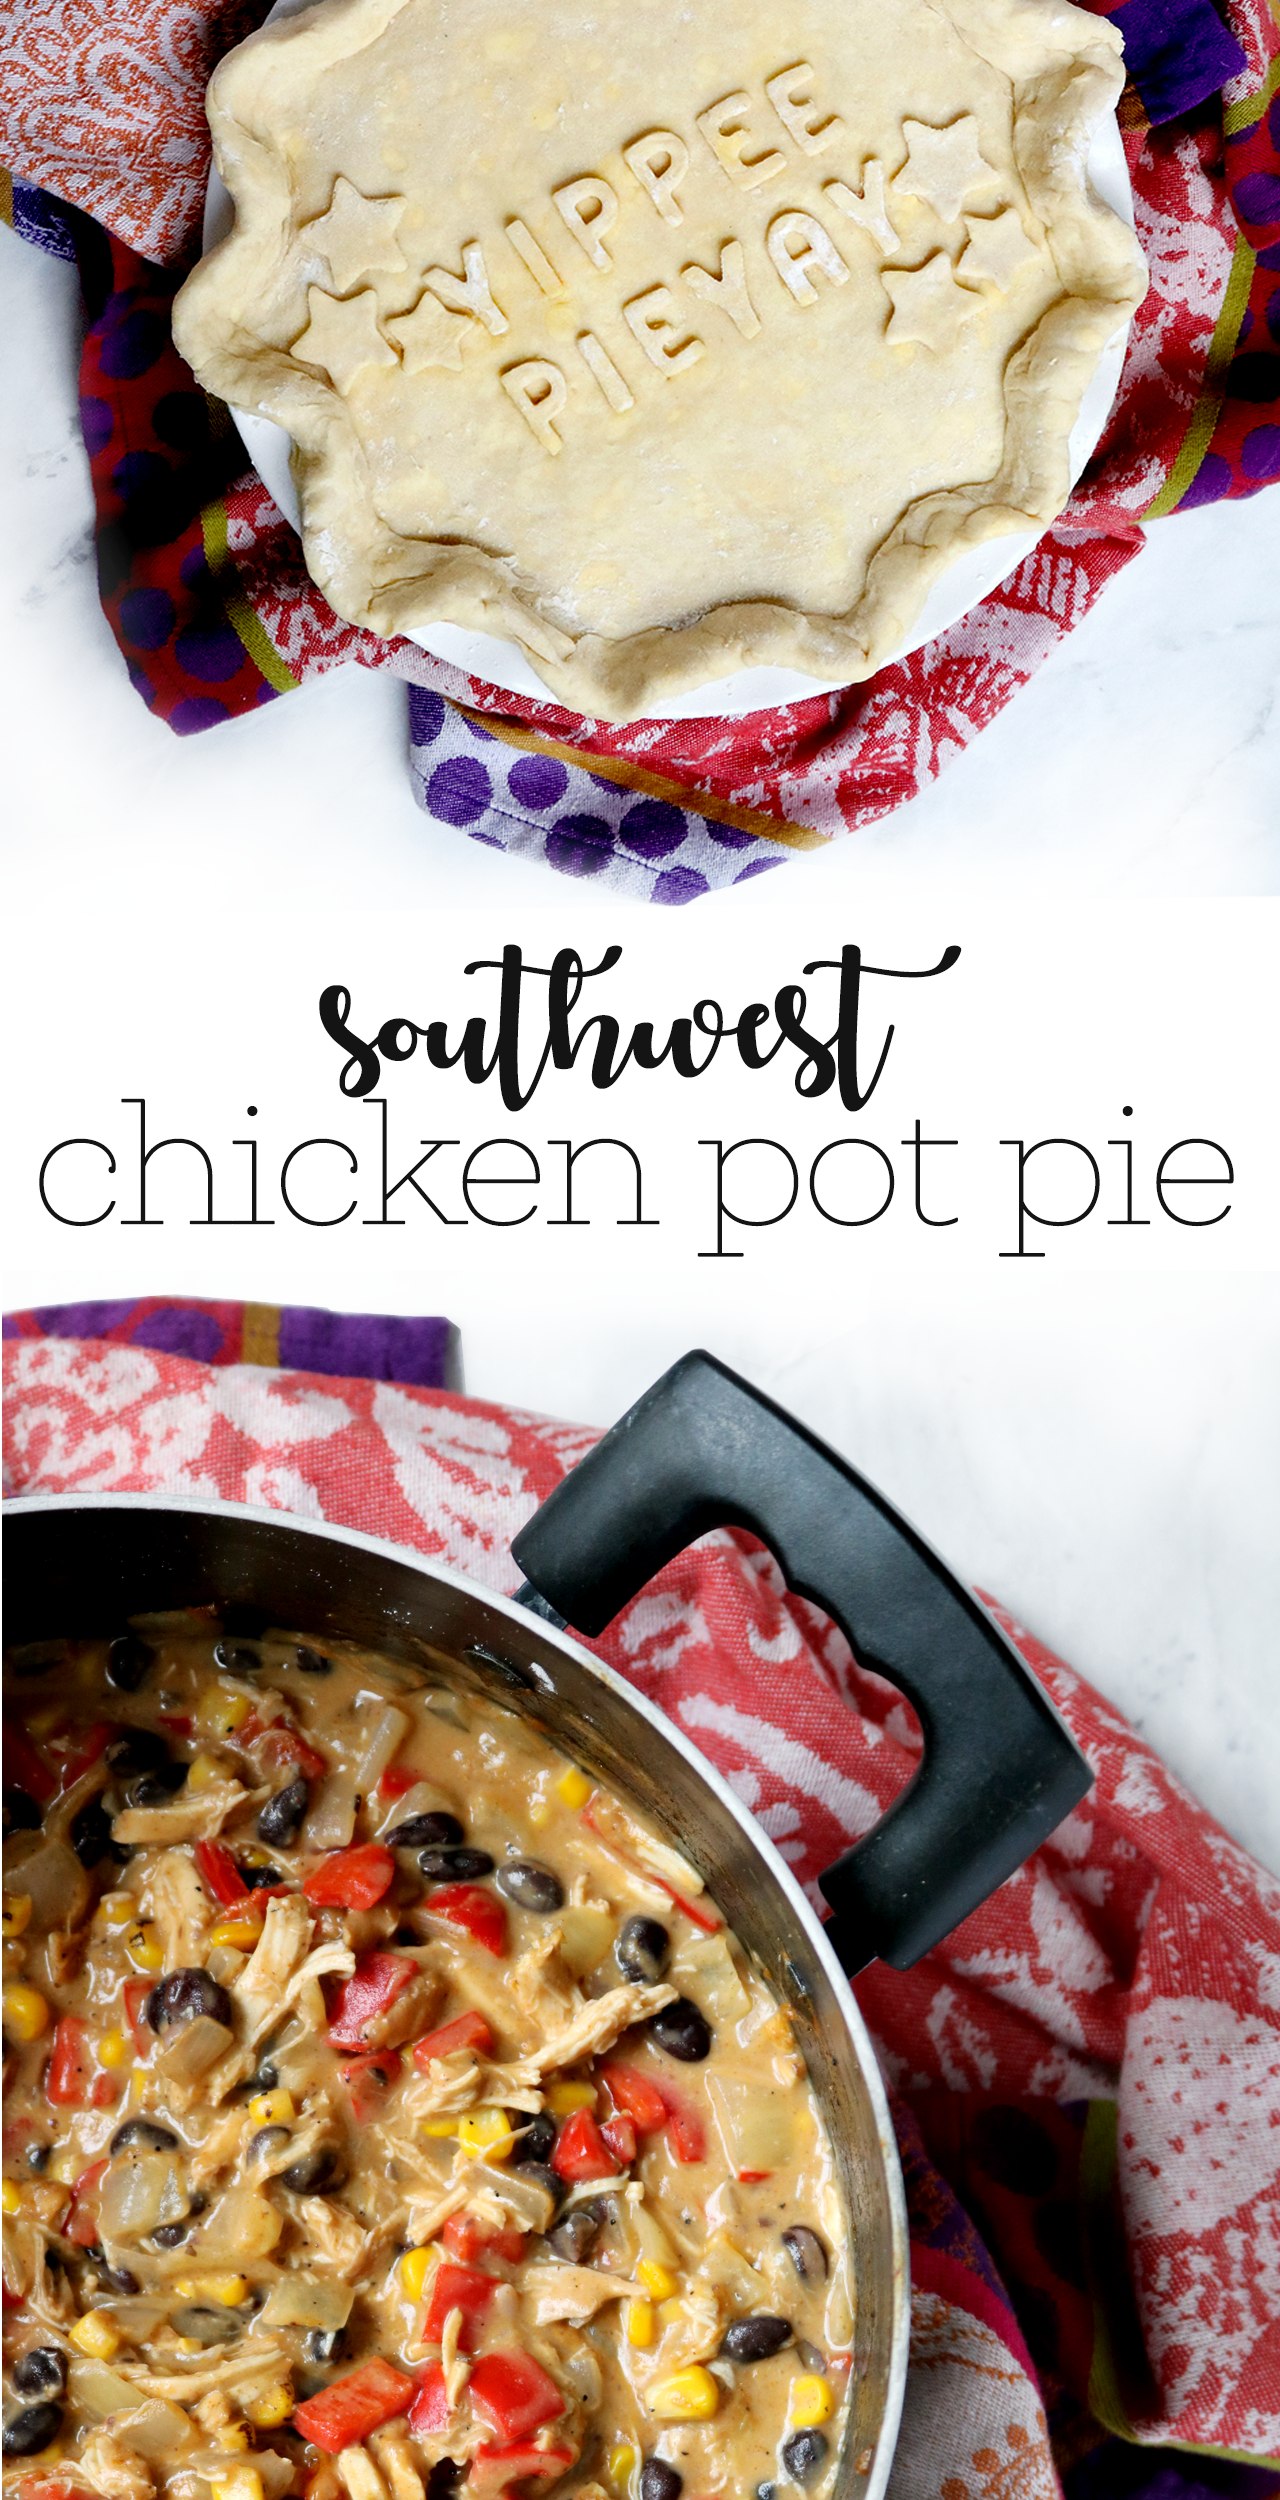 Southwestern Chicken Pot Pie recipe | via allspice blog